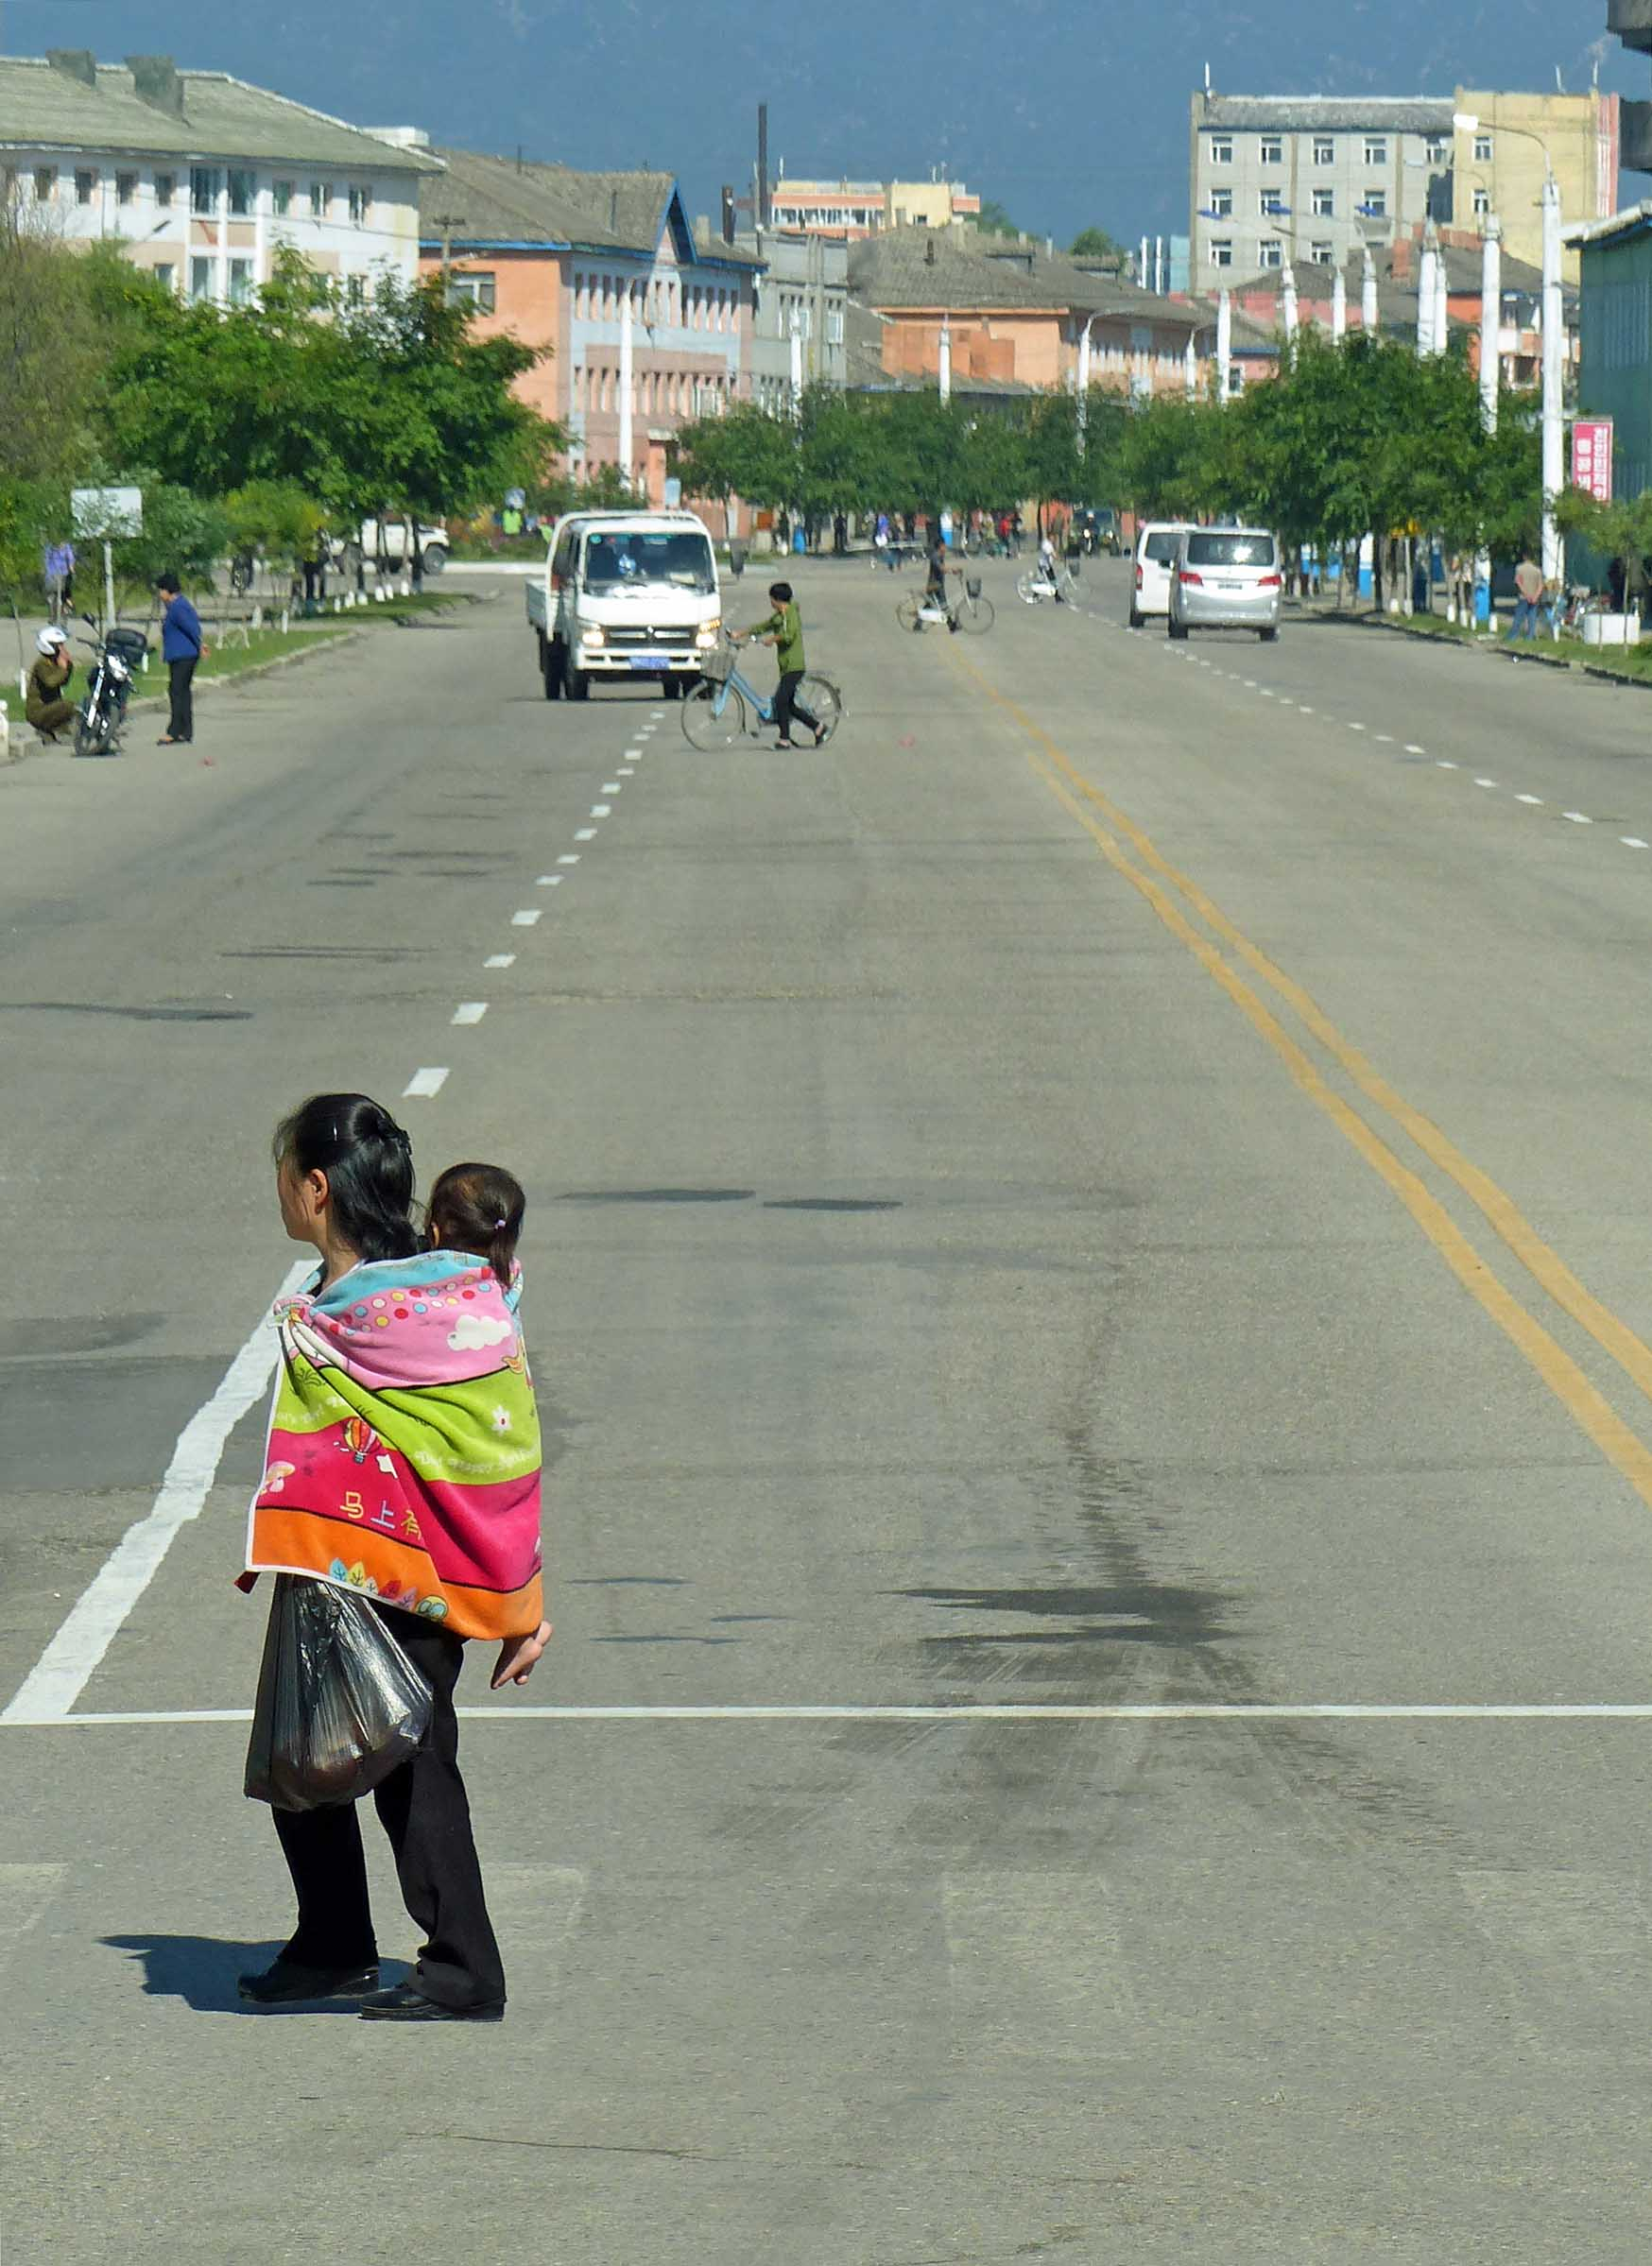 Lady crossing a road with child on her back